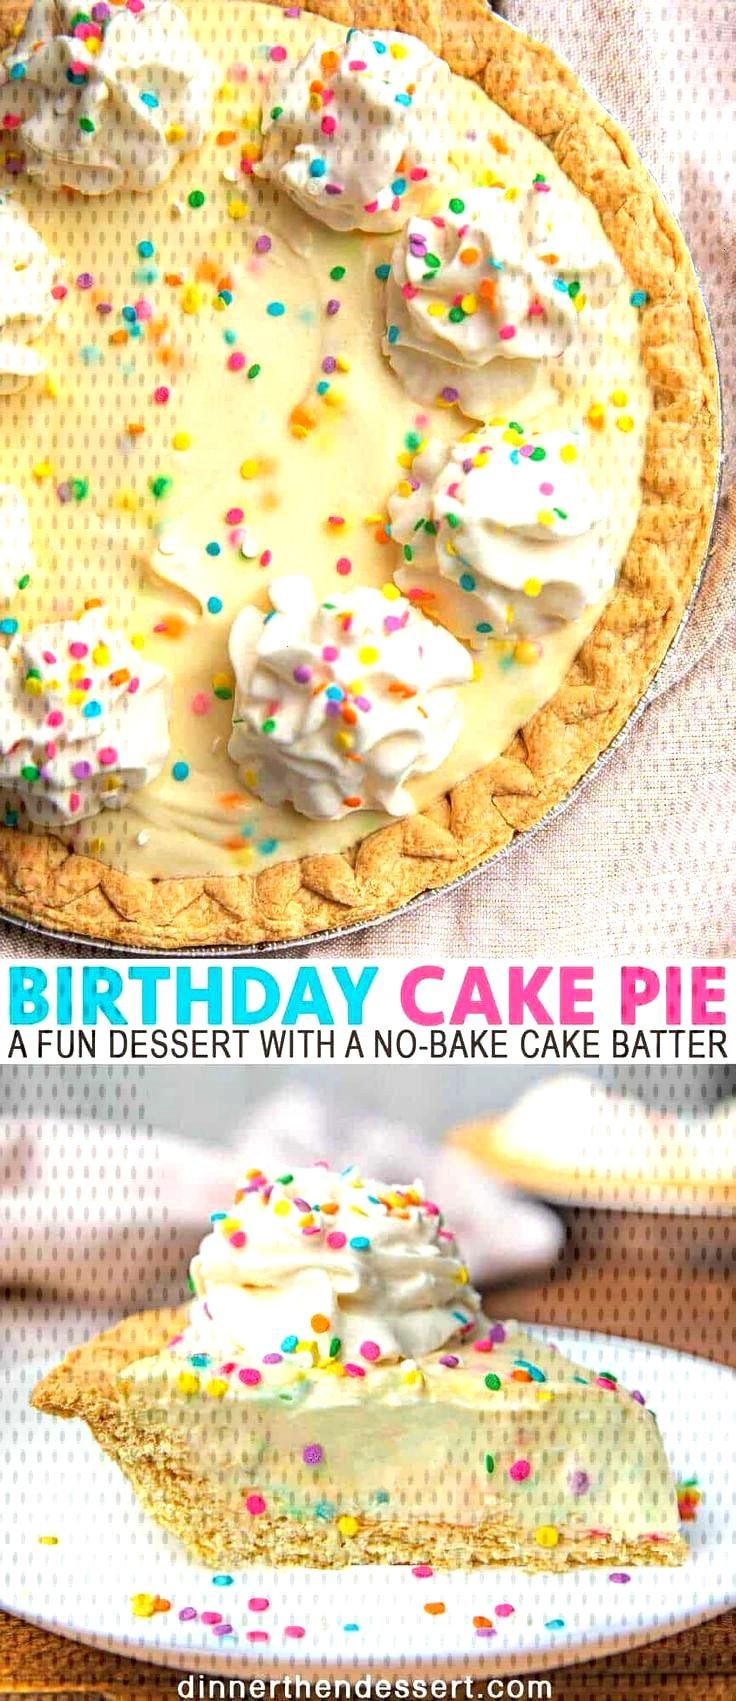 Birthday Cake Pie is a fun dessert with a no-bake cake batter flavored pudding filling in a classic